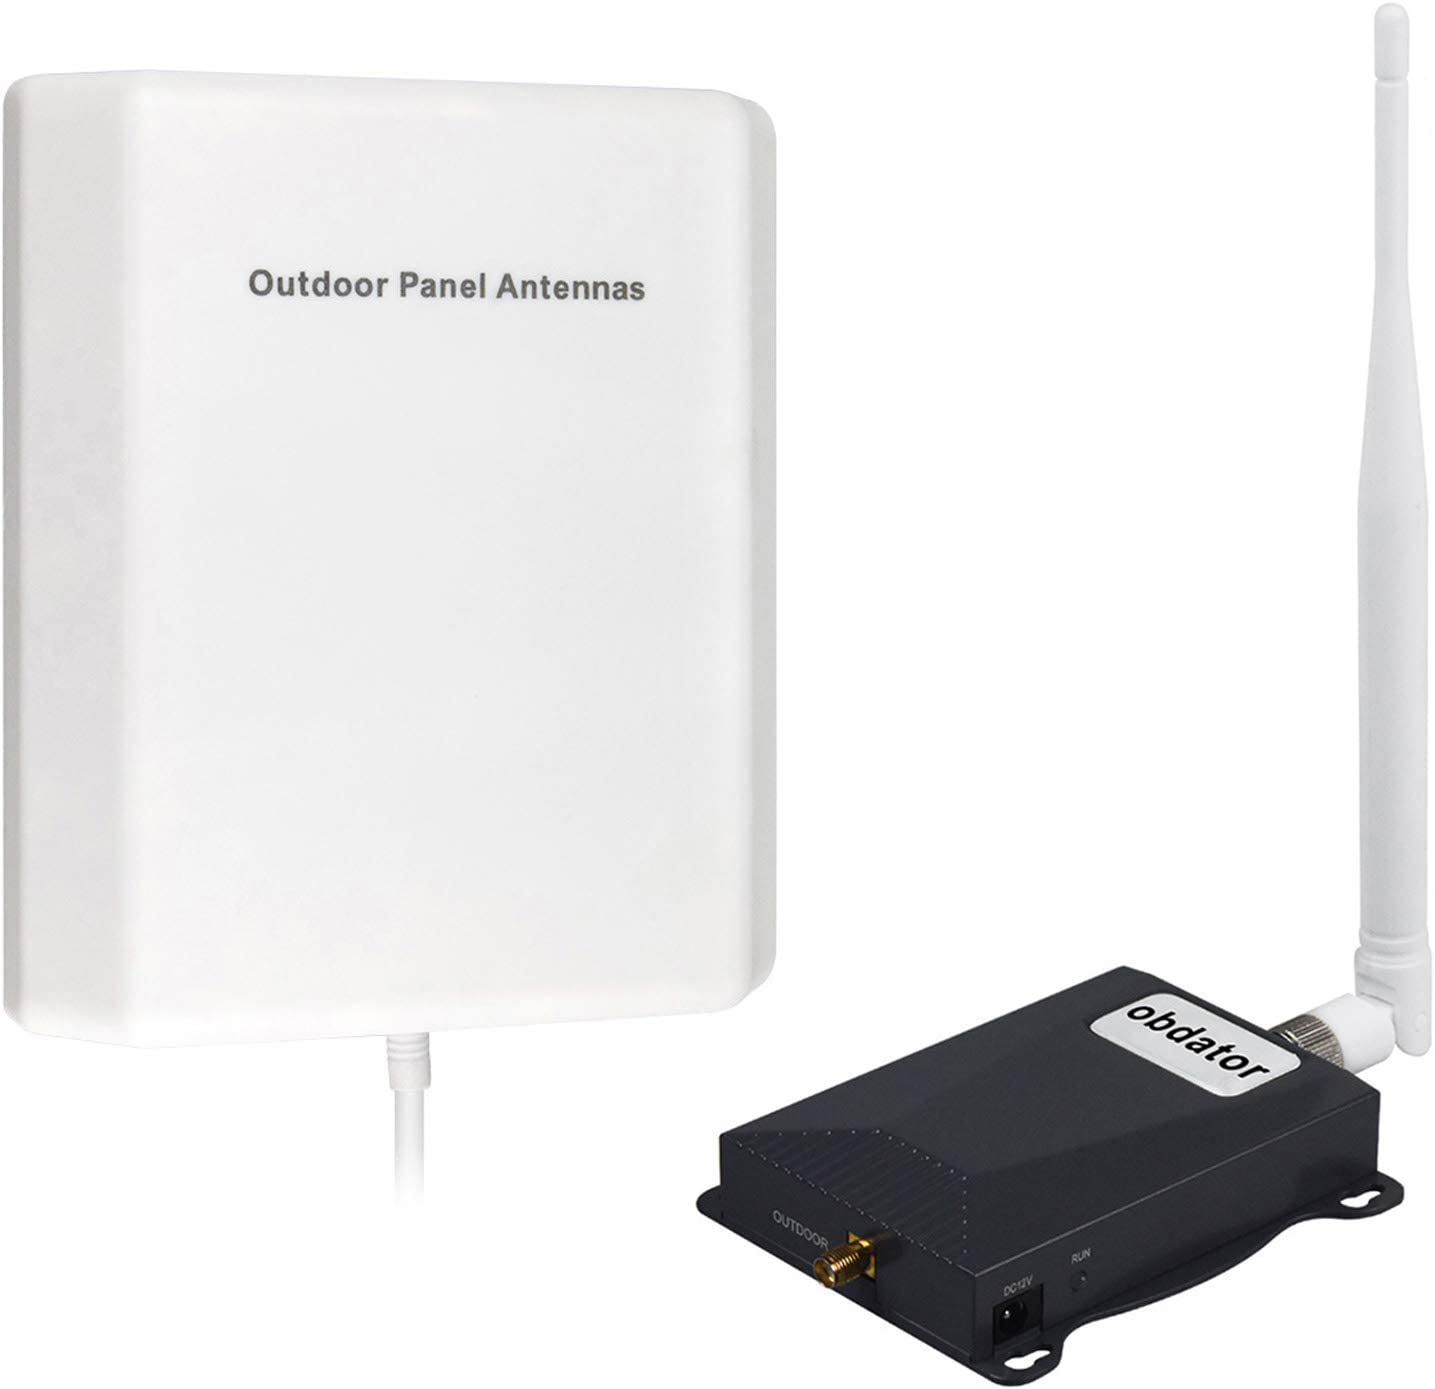 AT&T T-Mobile Signal Booster 4G LTE Cell Phone Signal Booster Home Indoor FDD 700Mhz Cell Phone Booster Amplifier ATT Cell Booster Band 12 obdator High Gain Mobile Phone Signal Booster Repeater Kits